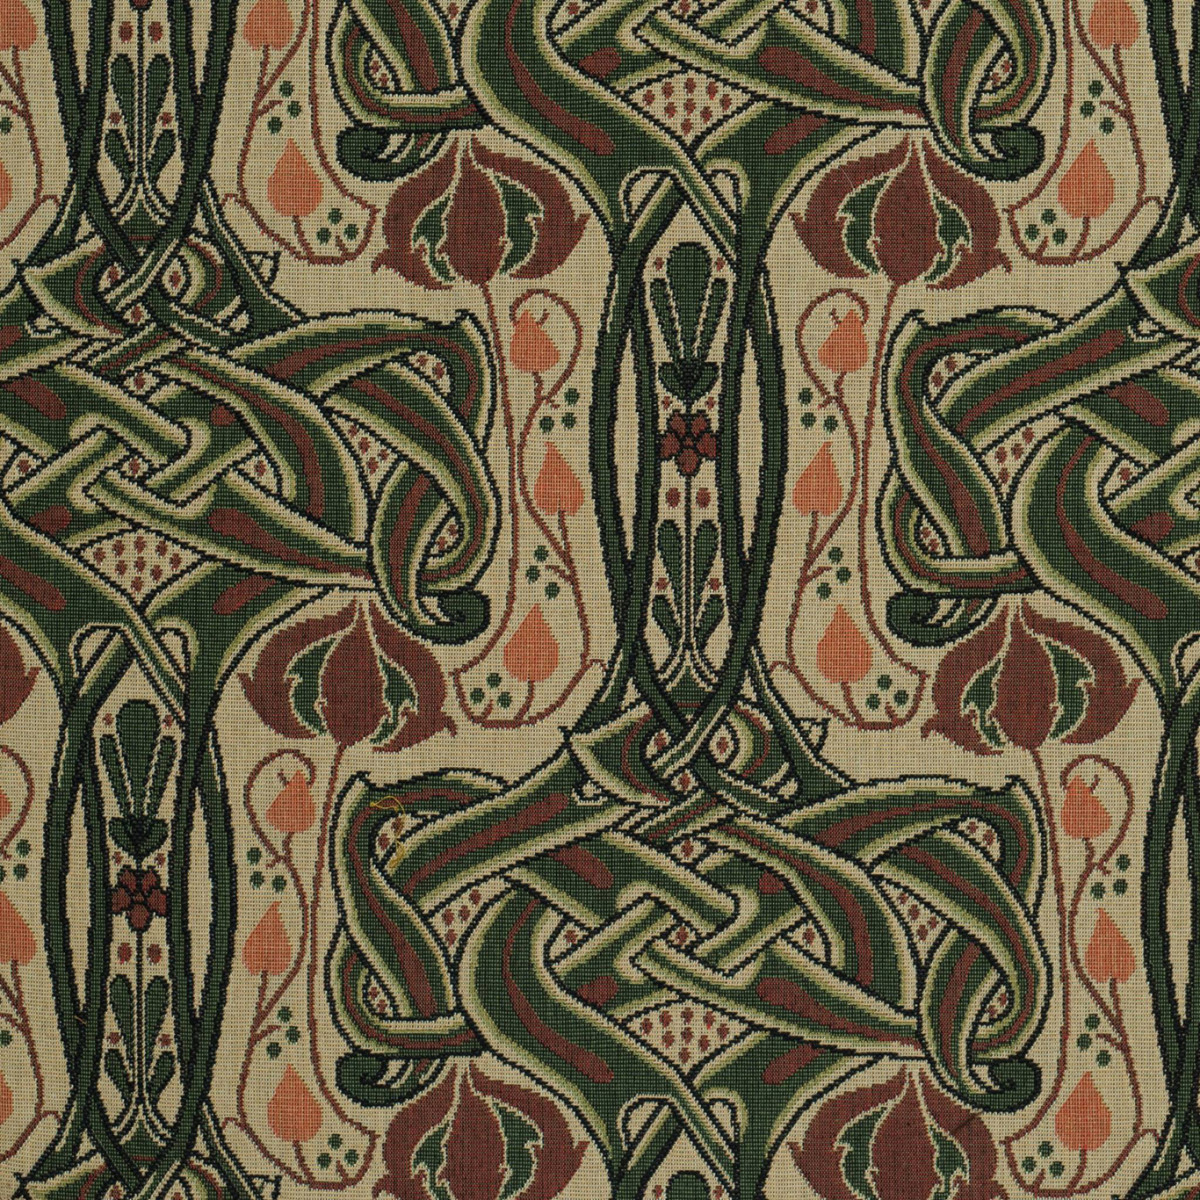 'Celtic Knot' is patterned after an antique fabric sample spotted at an antiques show.